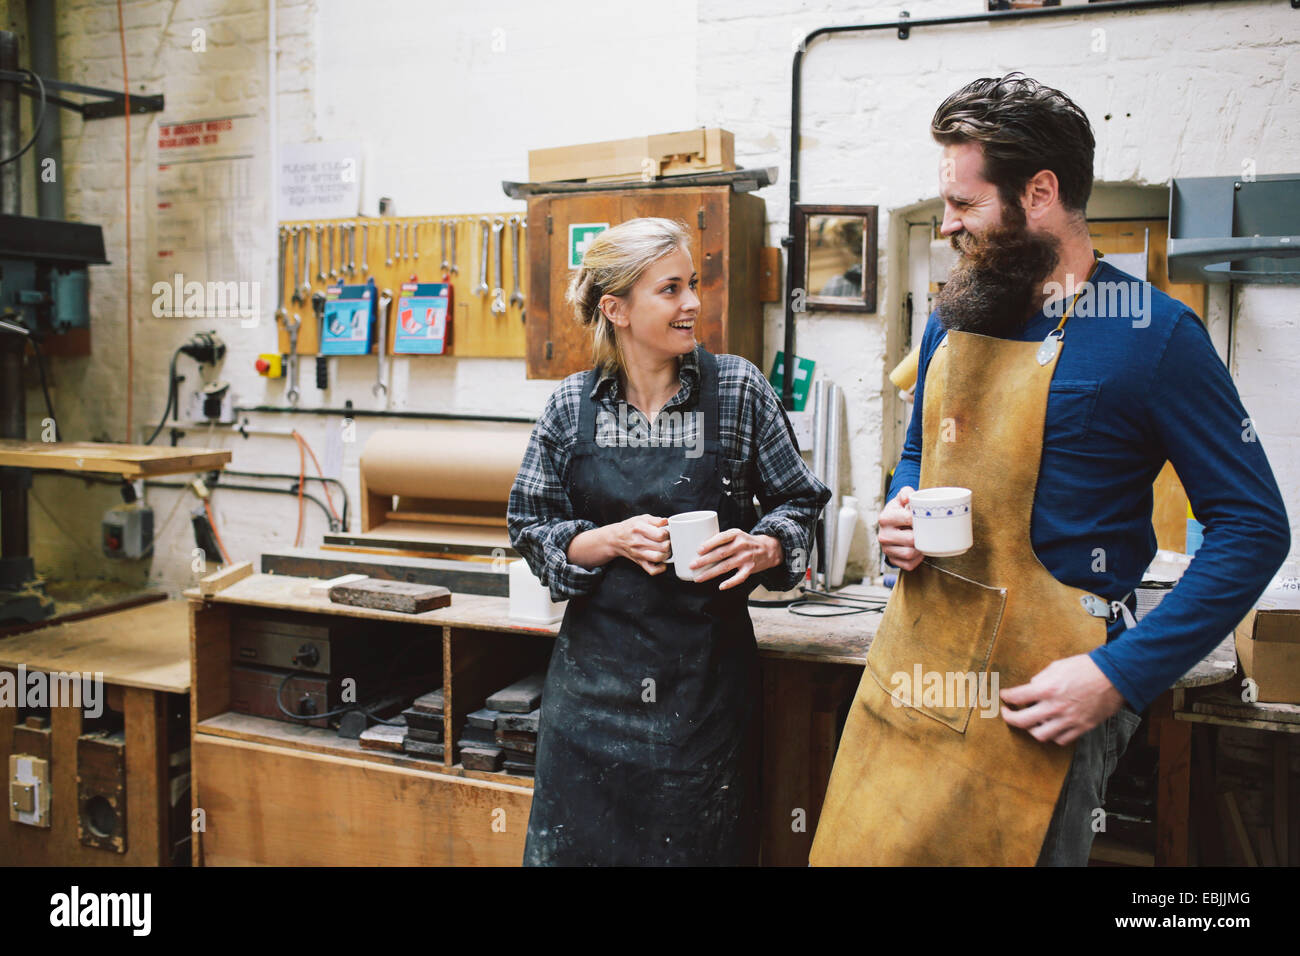 Craftsman and woman chatting in pipe organ workshop - Stock Image